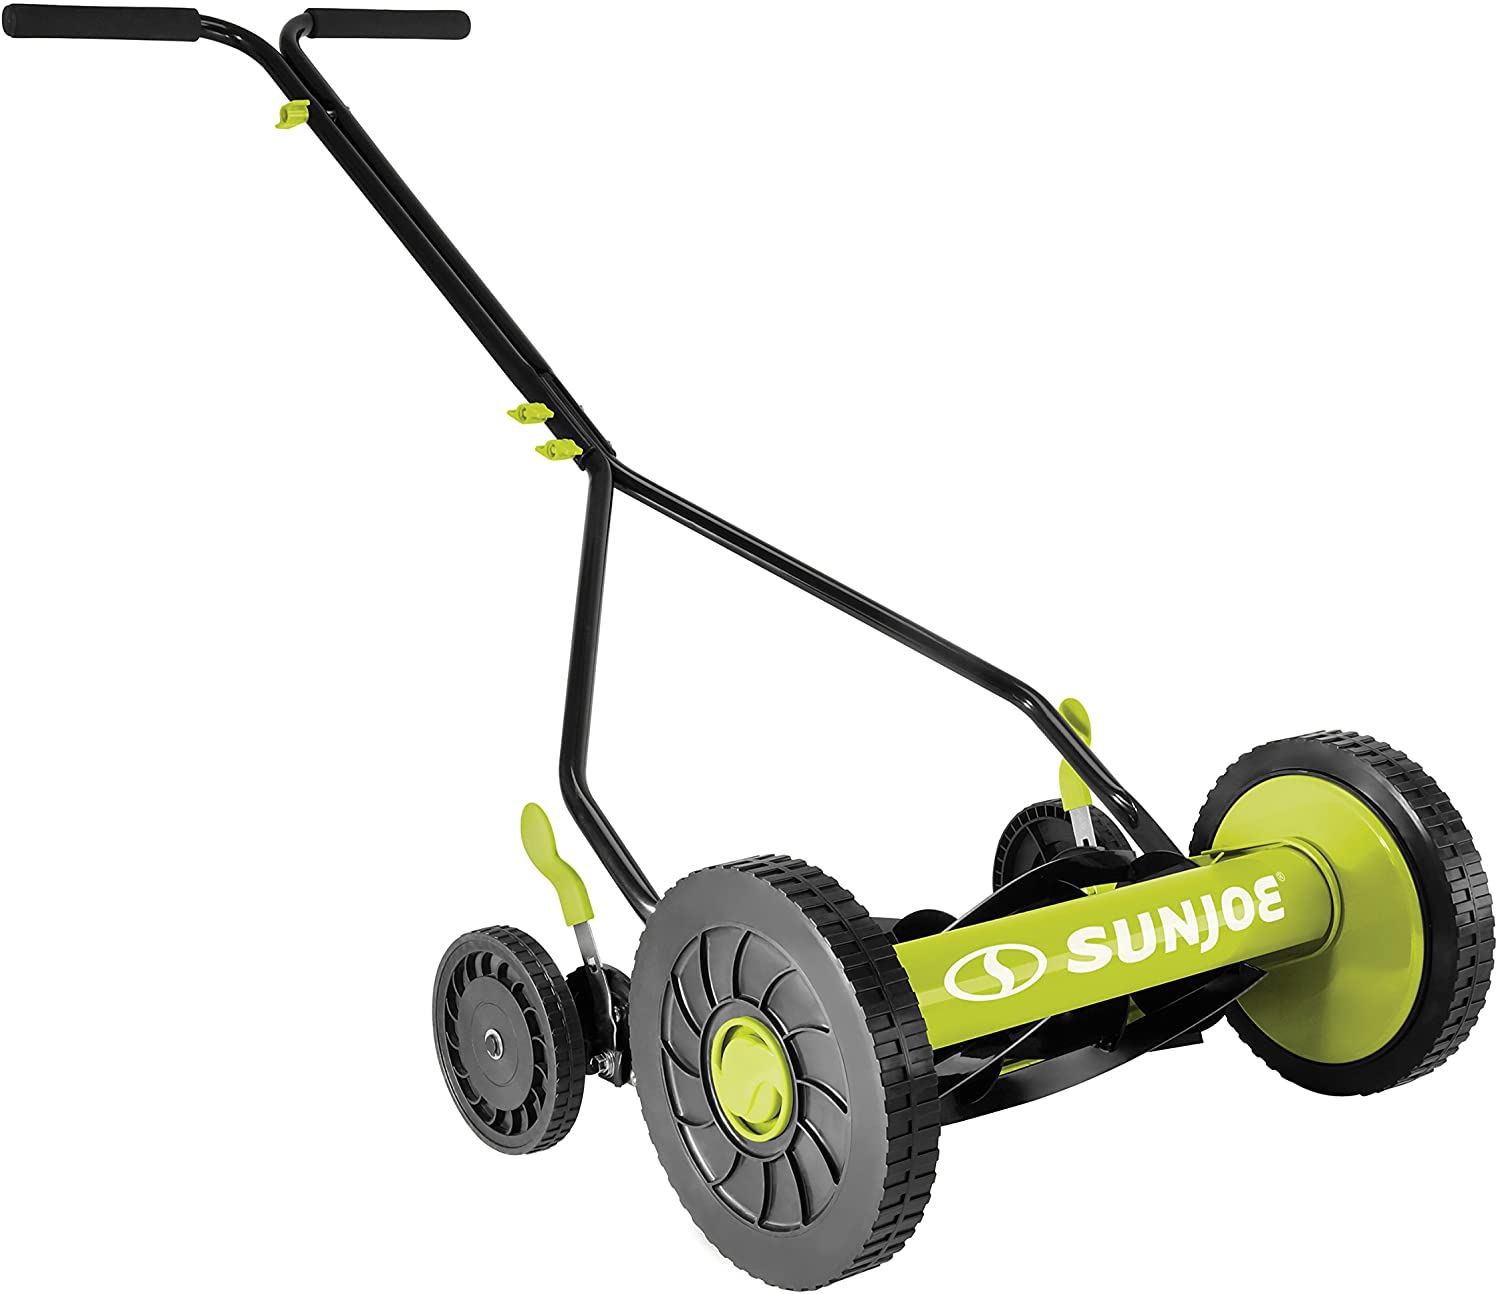 SUNJOE LM Reel Mower 16